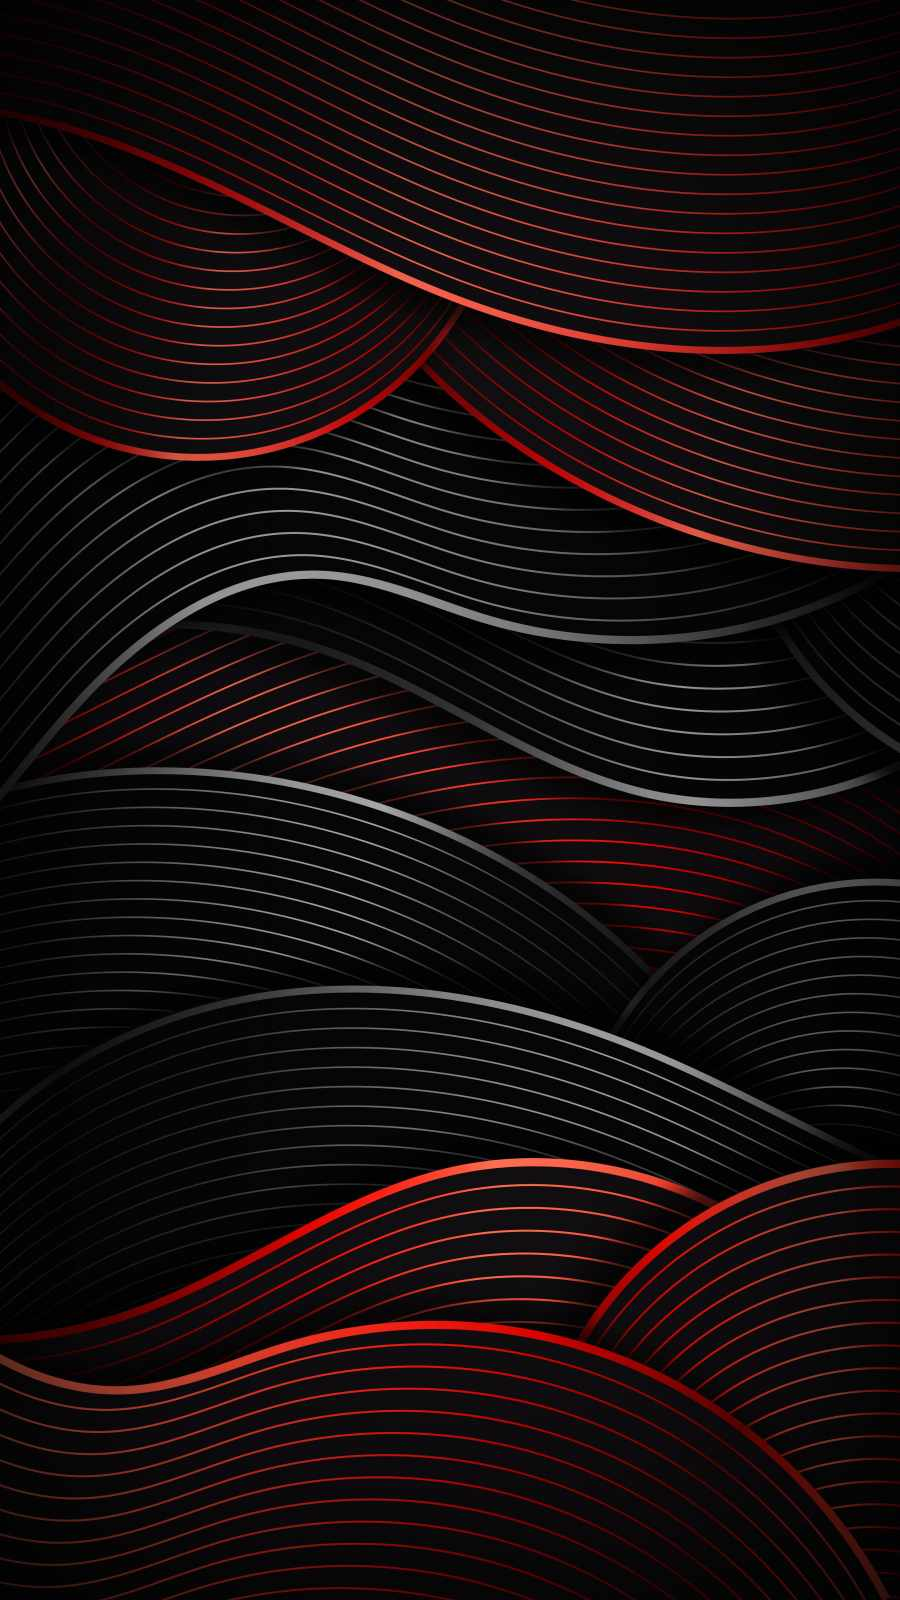 Abstract Waves iPhone Wallpaper